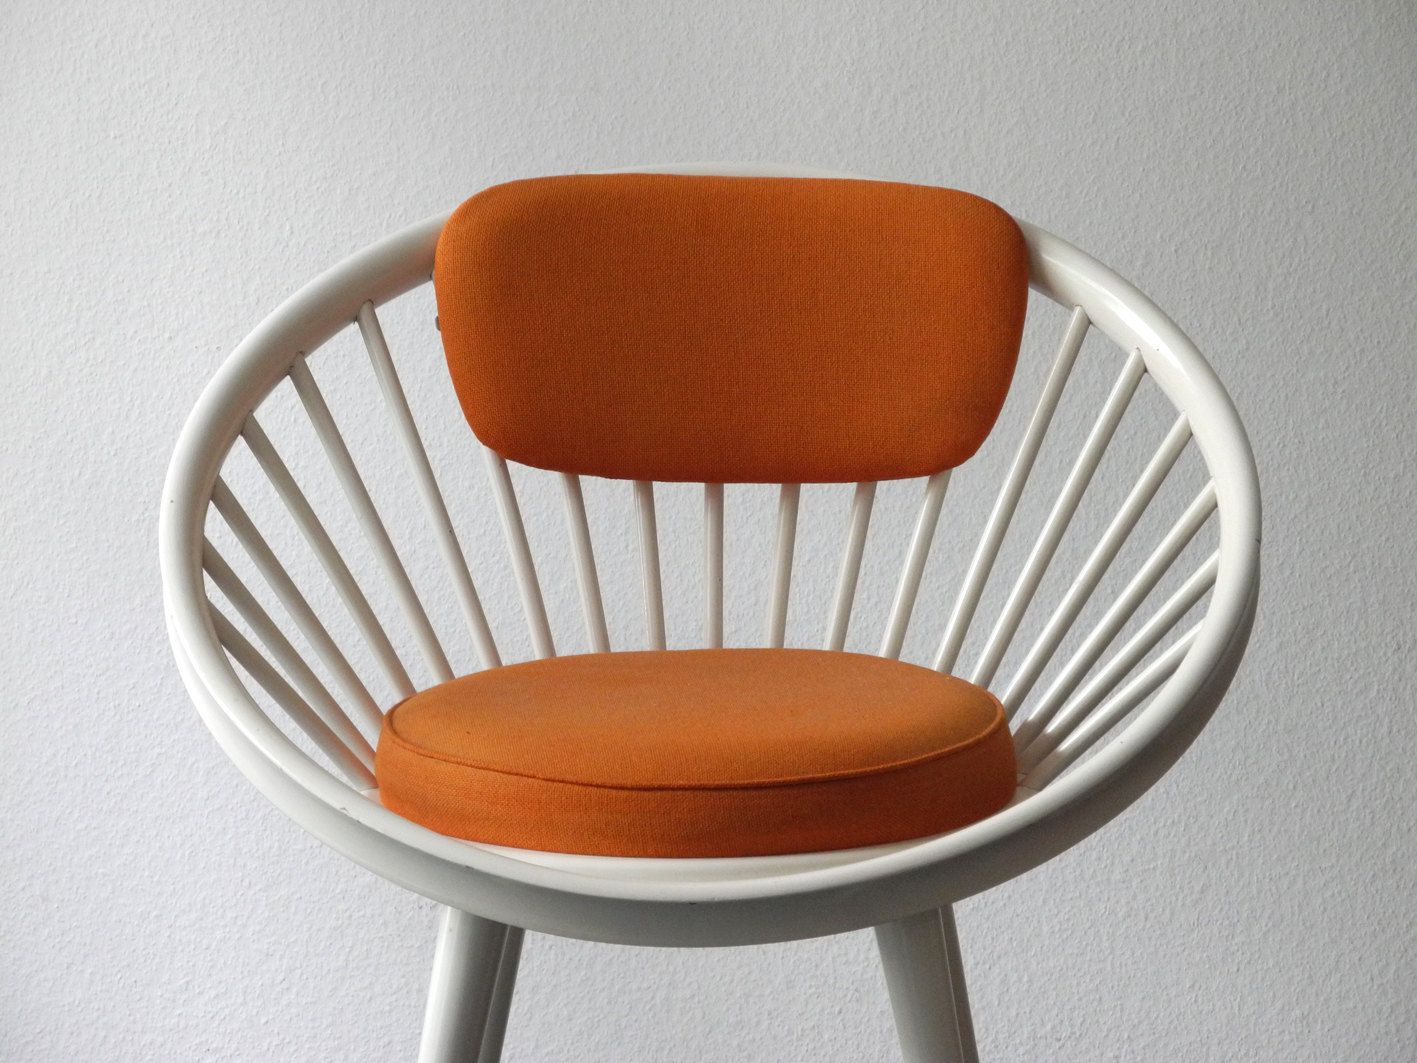 co chairs circle fisher price kids table and yngve ekström chair 1950s for sale at pamono